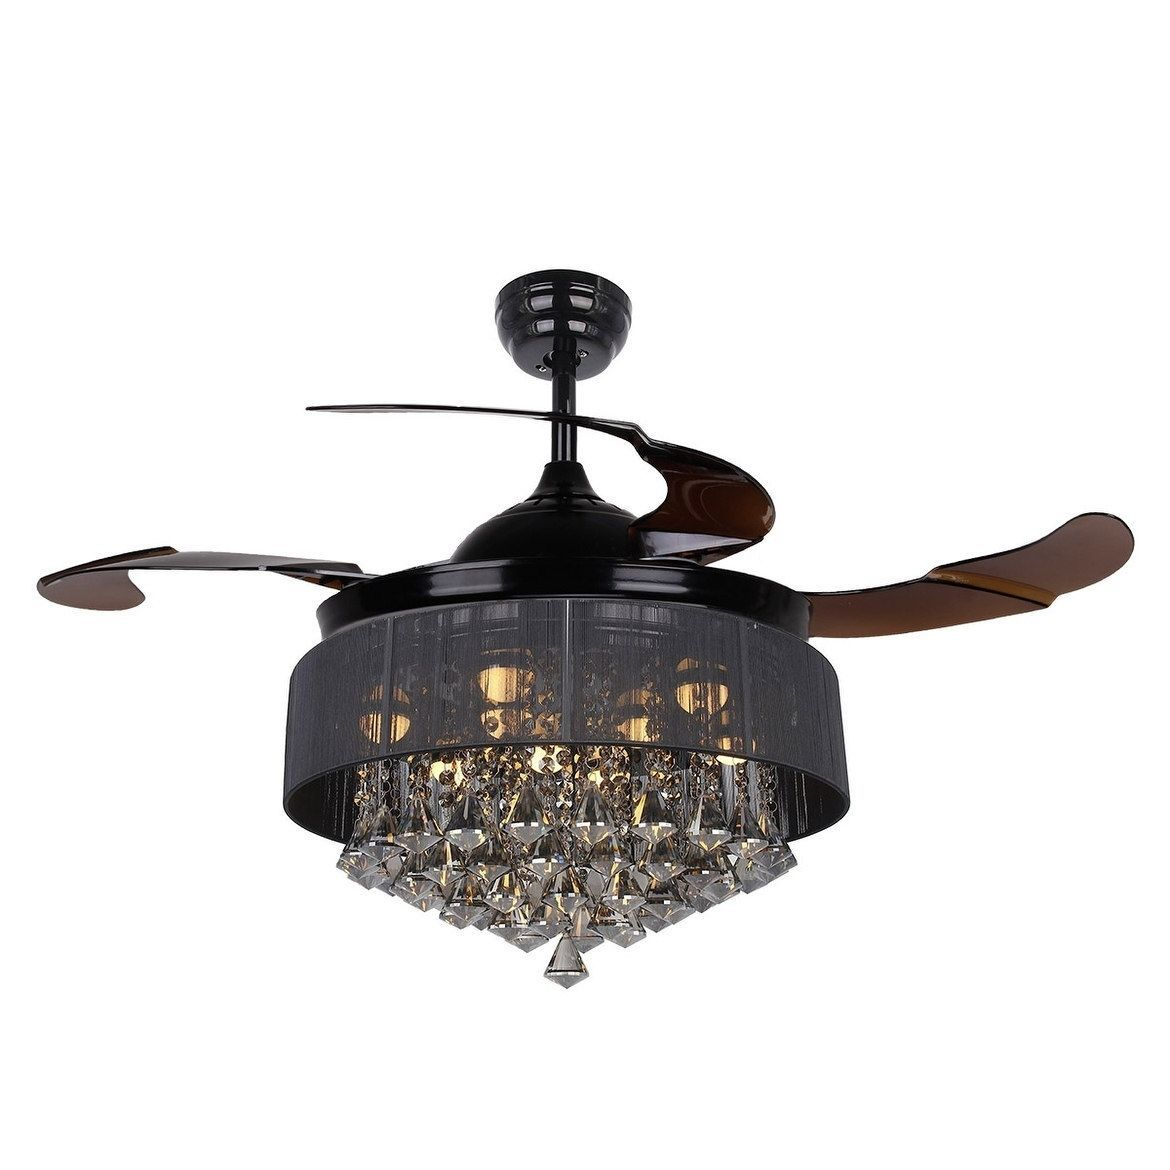 Parrot modern crystal led ceiling fan with foldable blades black parrot modern crystal led ceiling fan with foldable blades black metal aloadofball Gallery